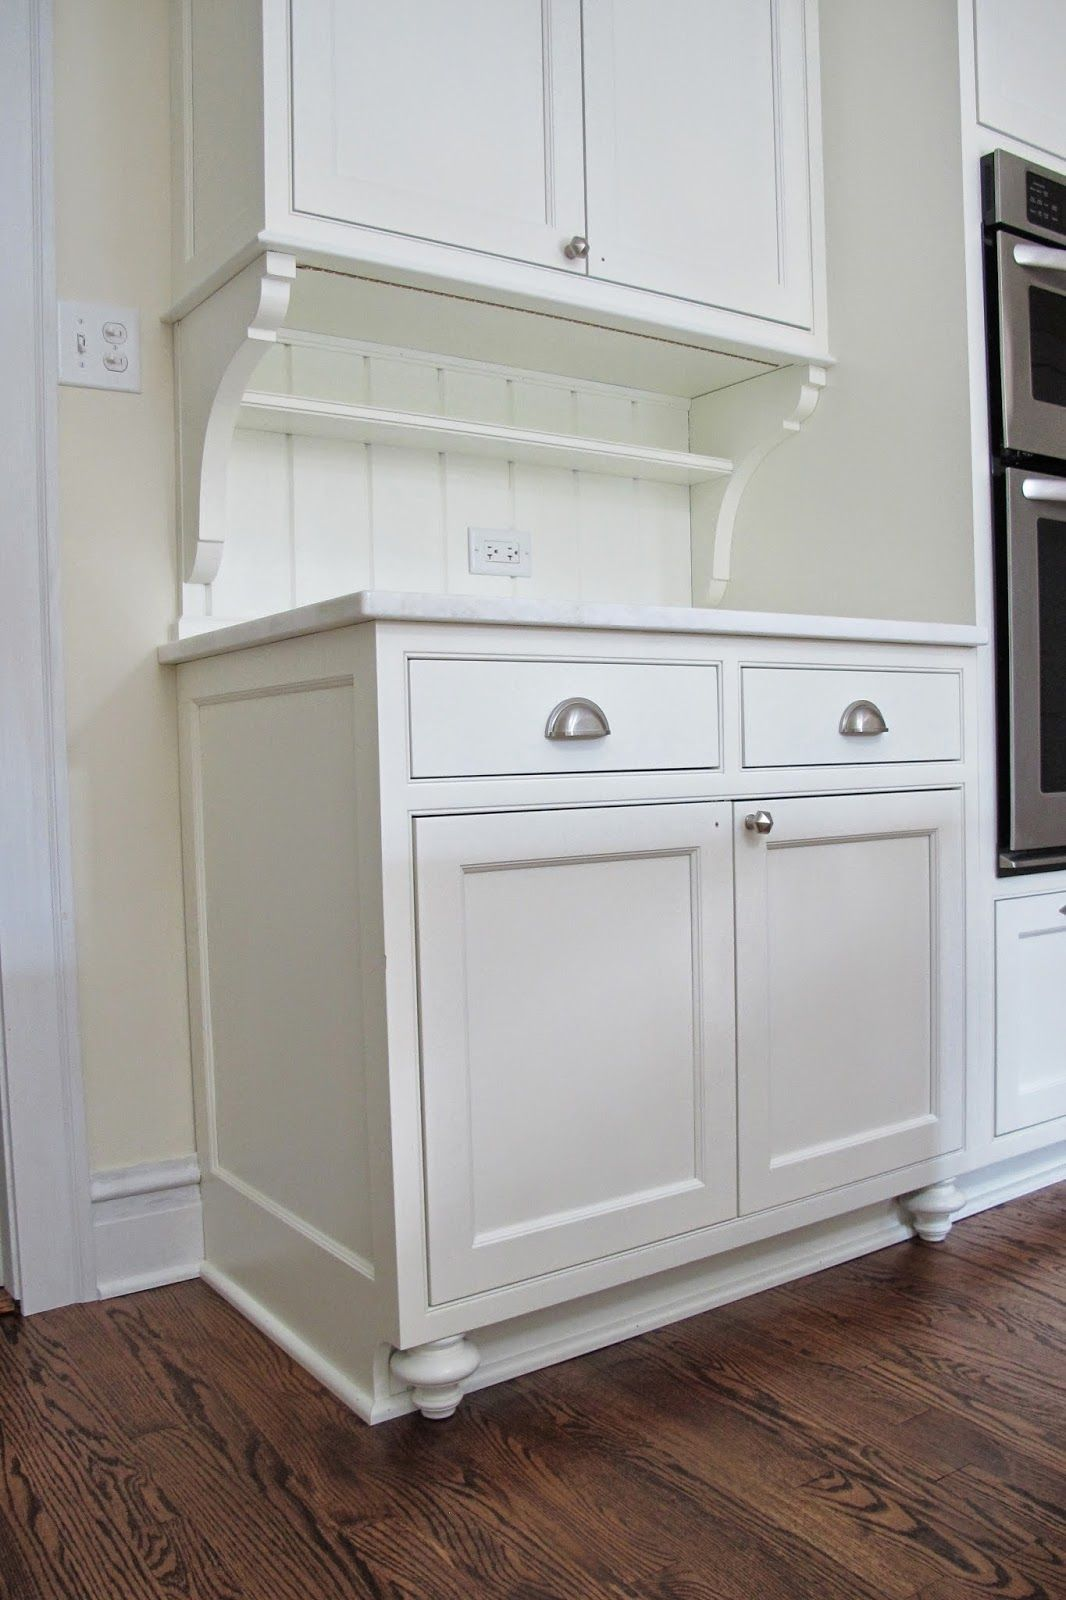 Kitchen Cabinets Look Like Furniture Furniture Home In 2020 Kitchen Remodel Small Kitchen Renovation Kitchen Cabinets